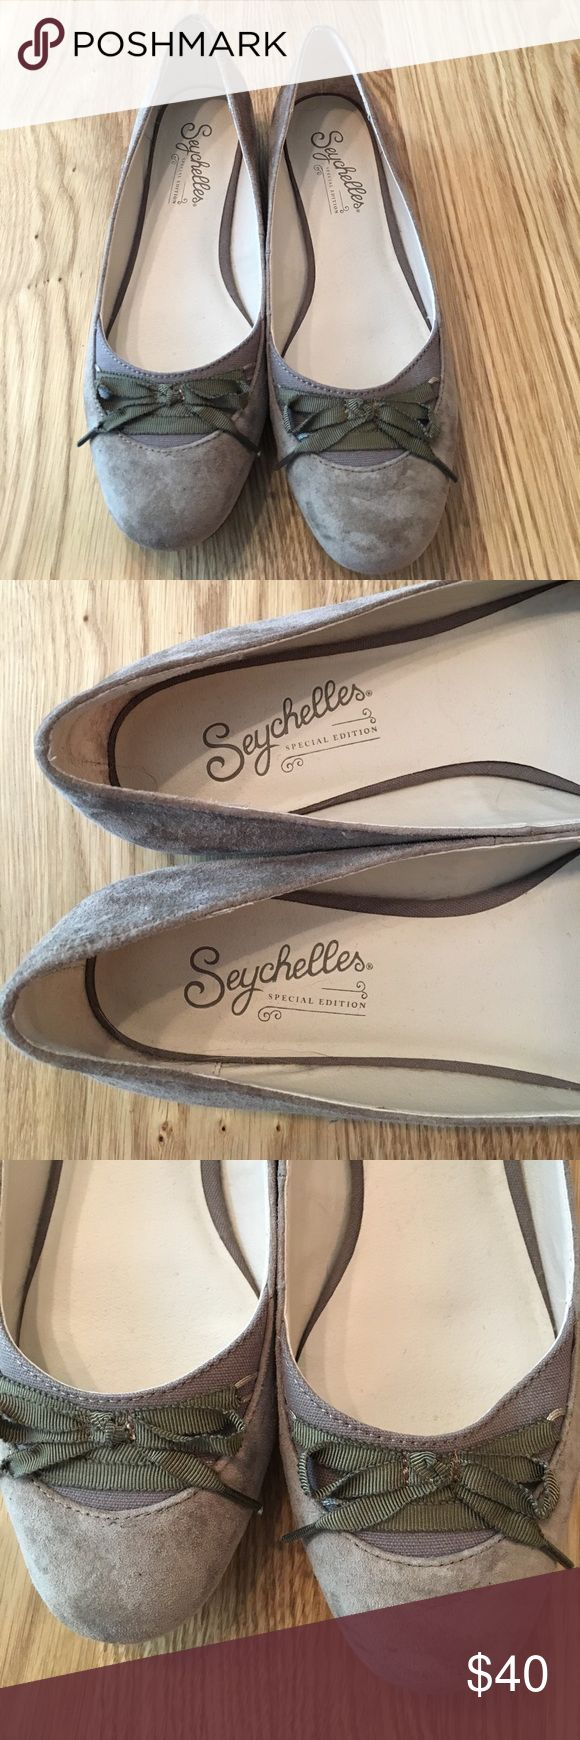 Anthropologie Ballet Flats, Brian size 8 NWOT Super cute brown ballet flats purchased from Anthropologie with the brand name Saychelles. Size 8 with adorable lace up detail on toes. Never worn, new without tags or box. Anthropologie Shoes Flats & Loafers